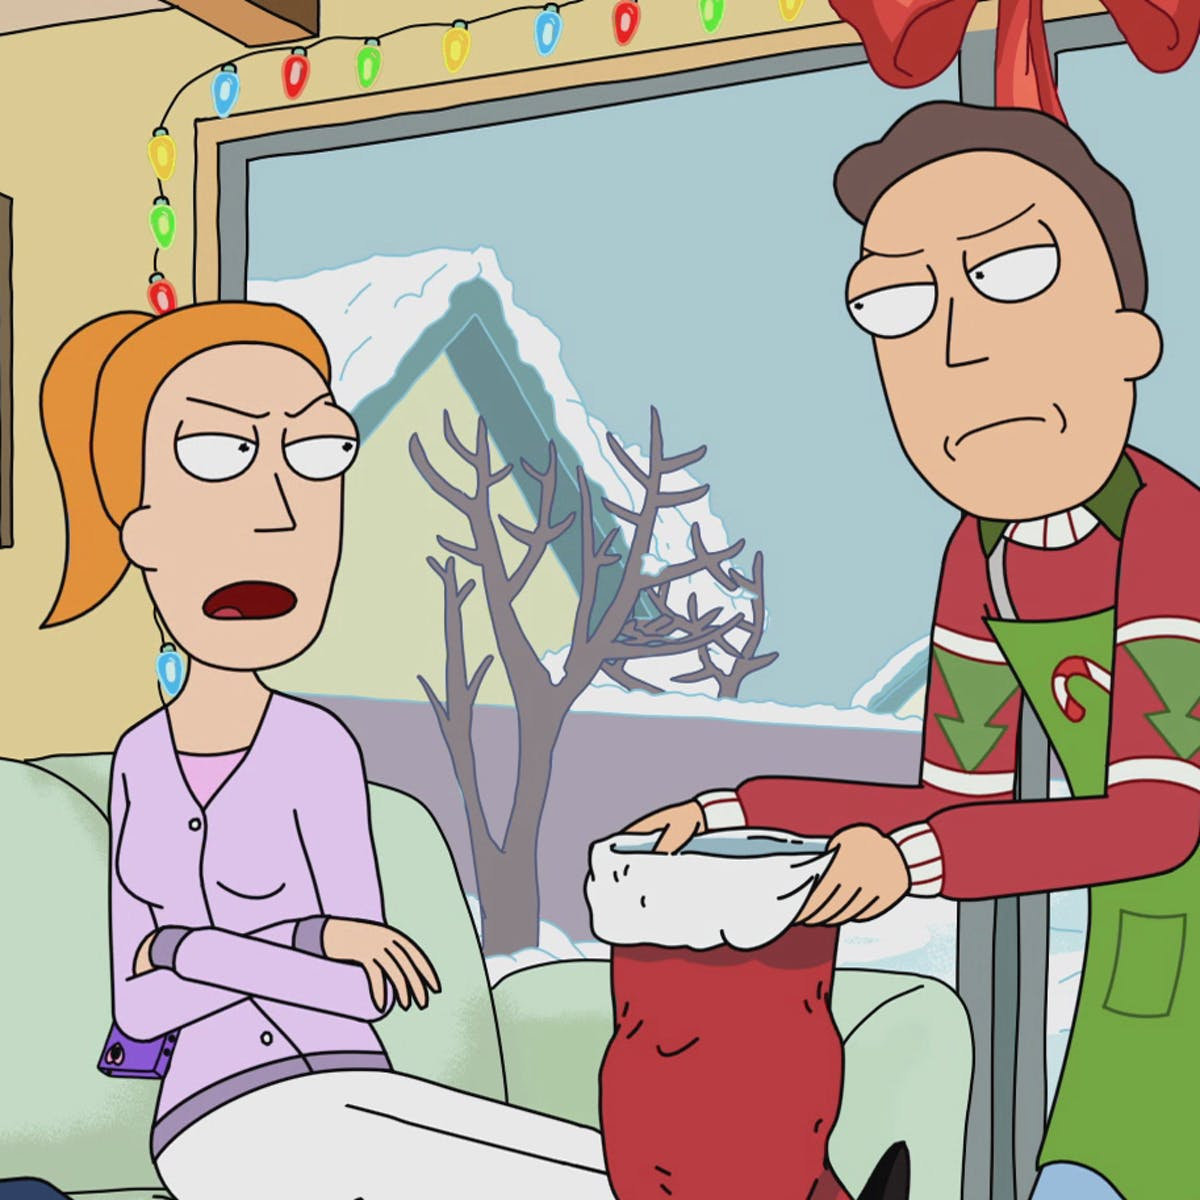 'Rick and Morty' Season 4 Christmas Episode Teased at San Diego-Comic Con